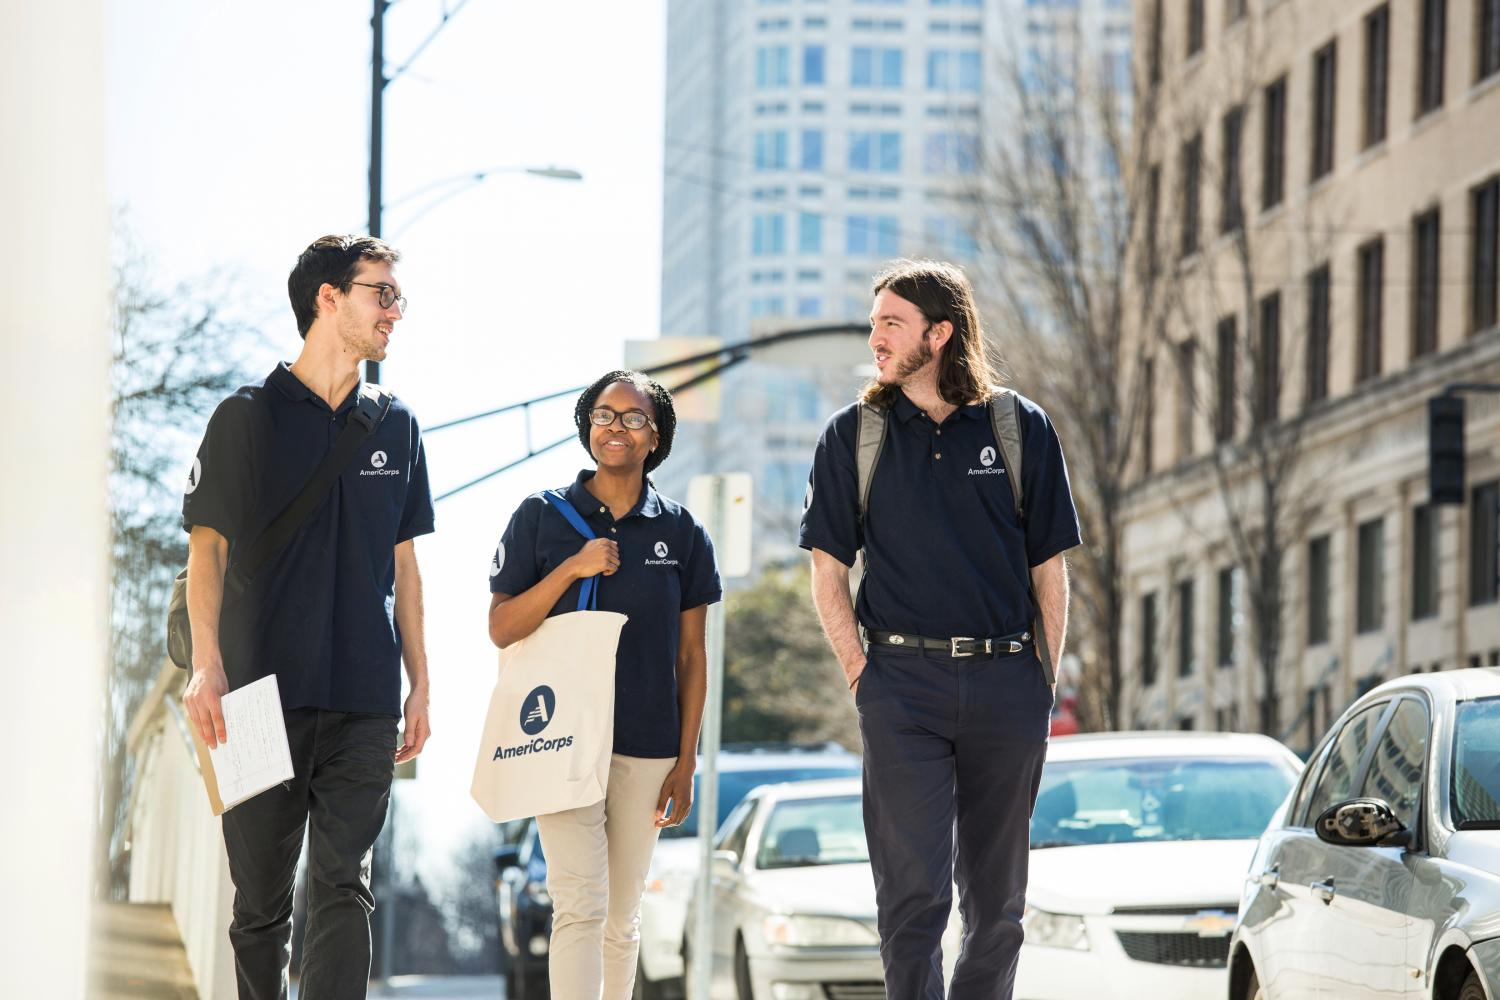 Three AmeriCorps members walking on sidewalk